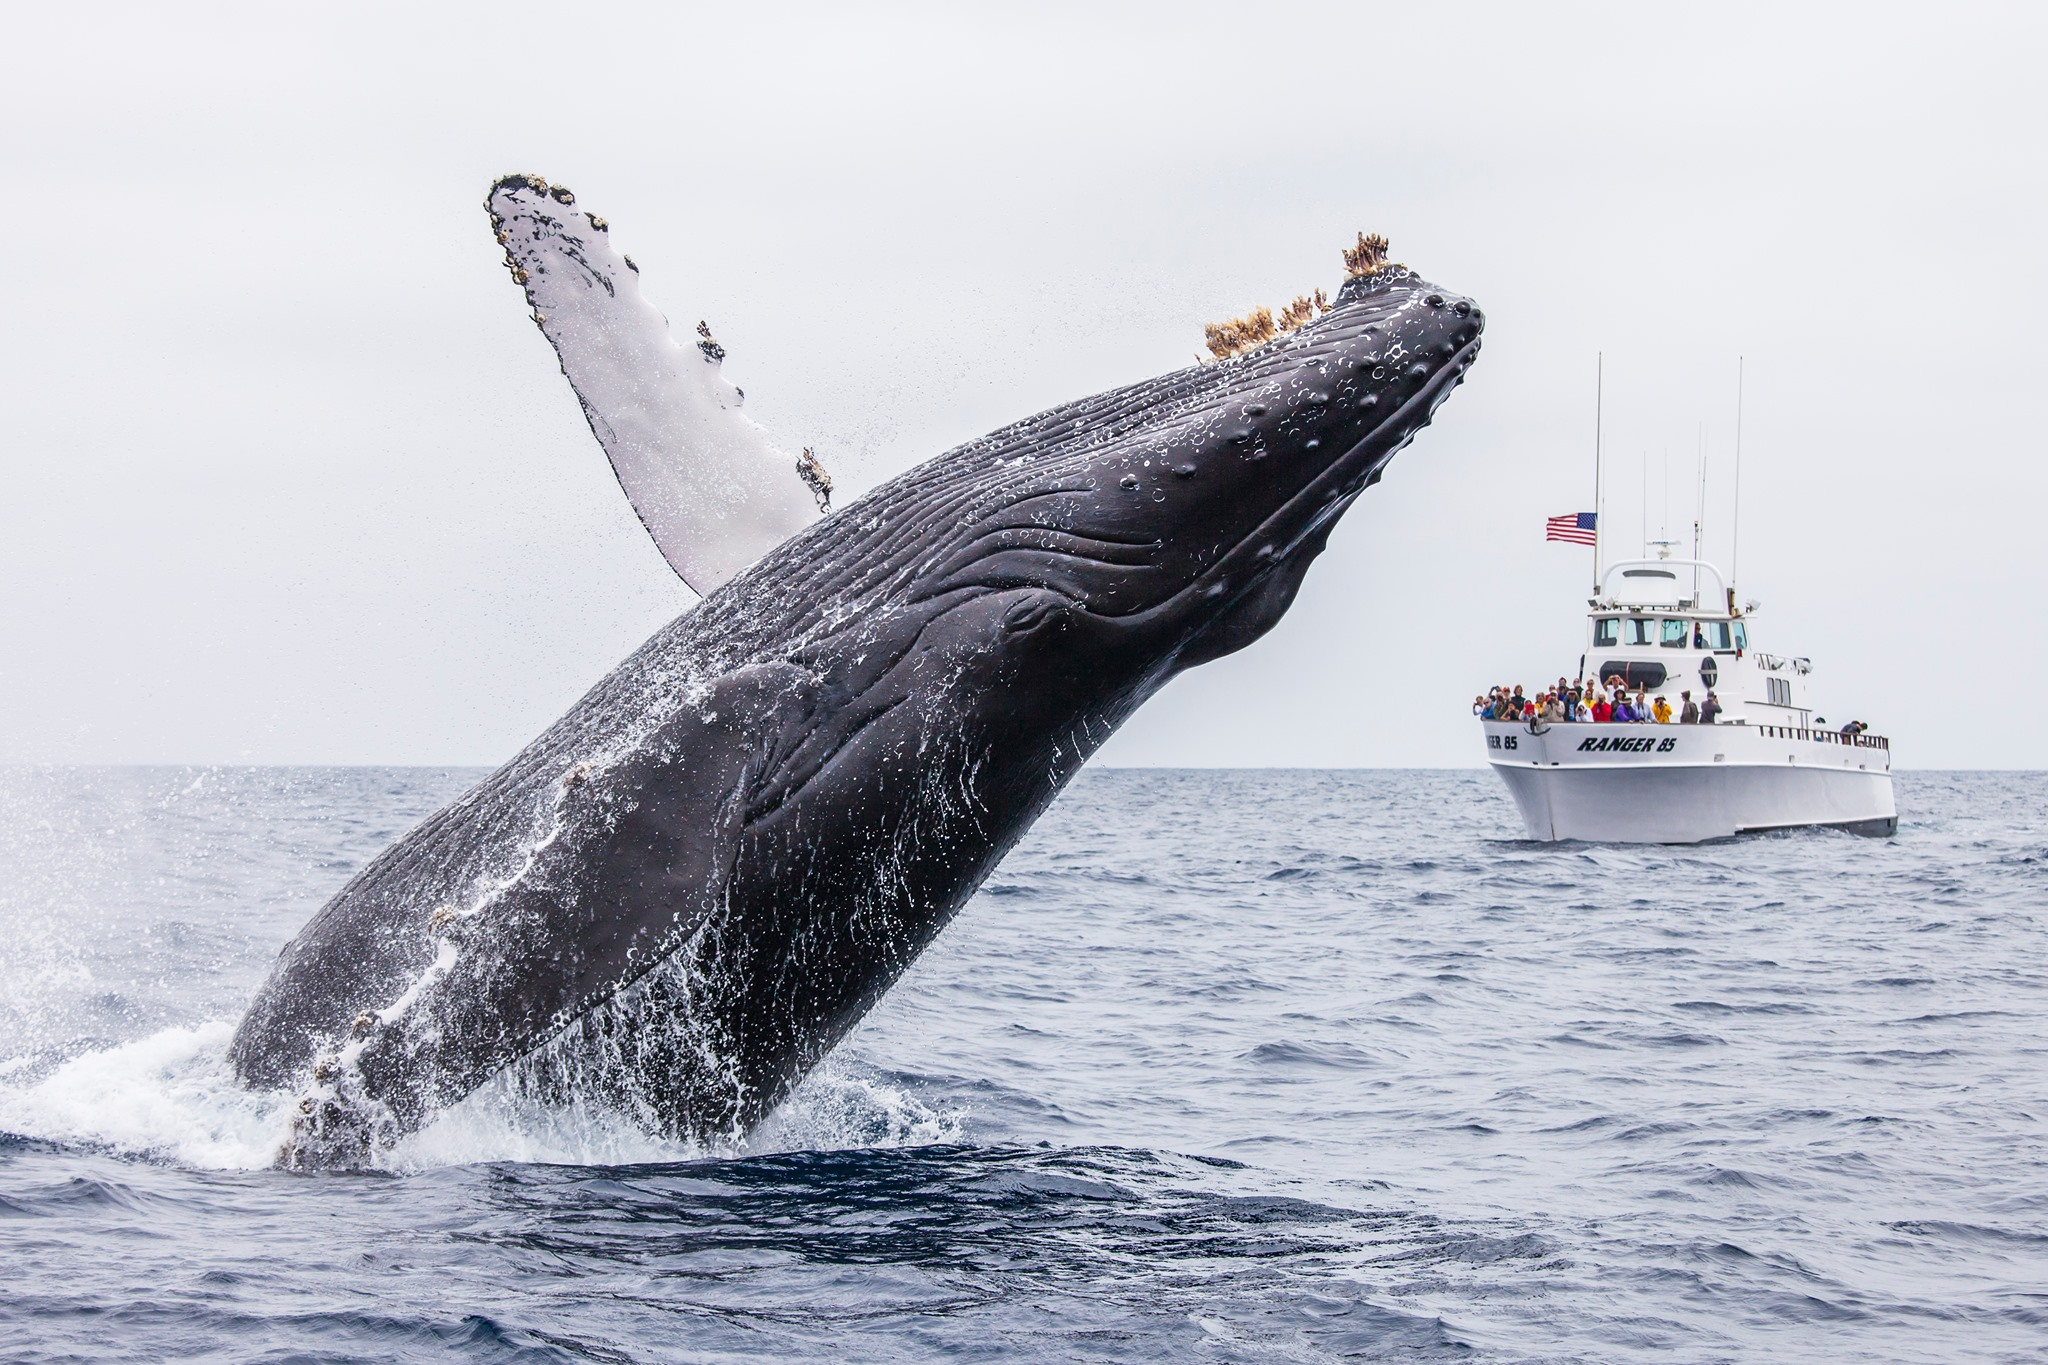 23rd Annual Celebration of the Whales